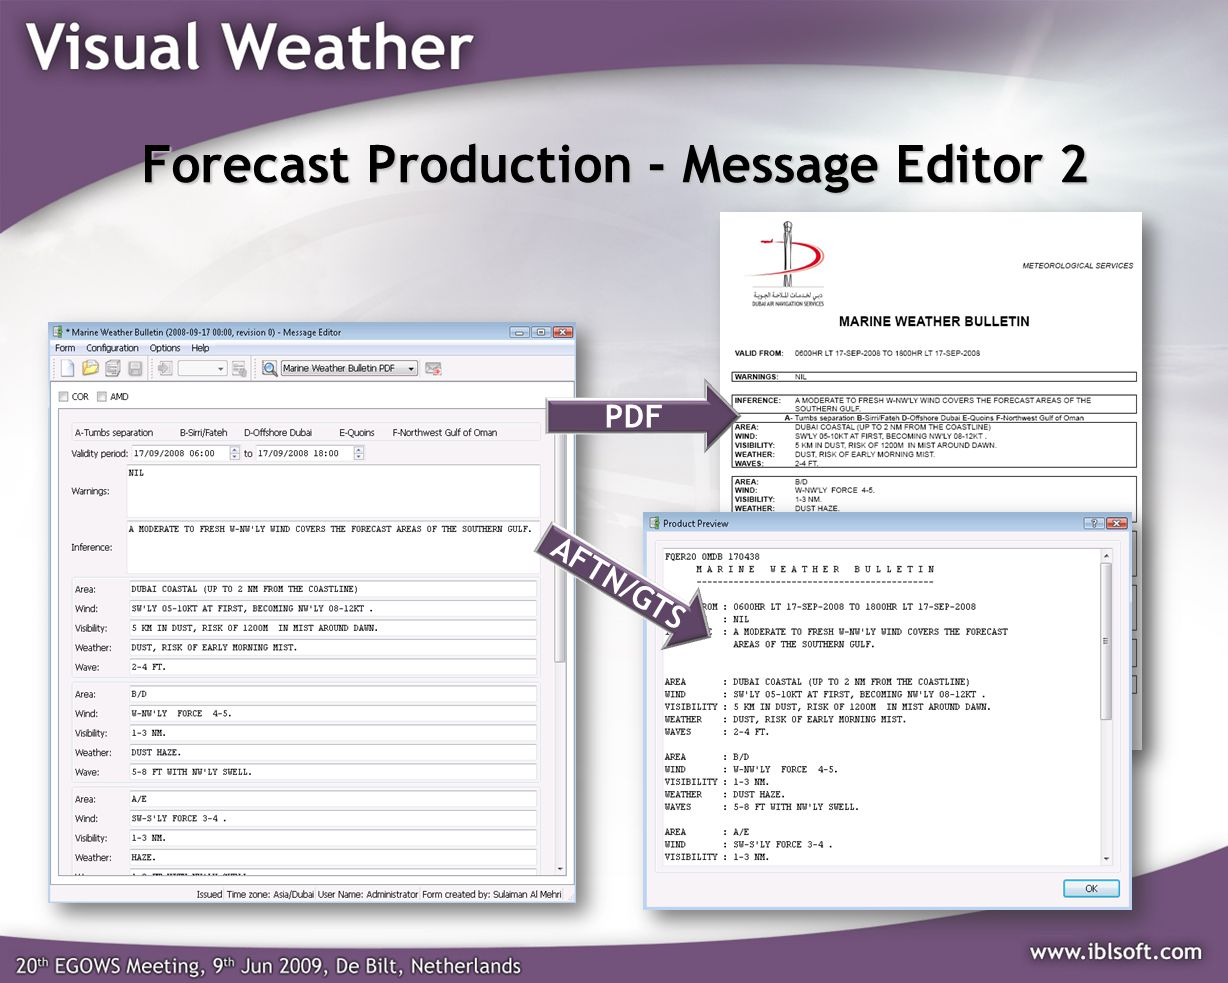 Forecast Production - Message Editor 2